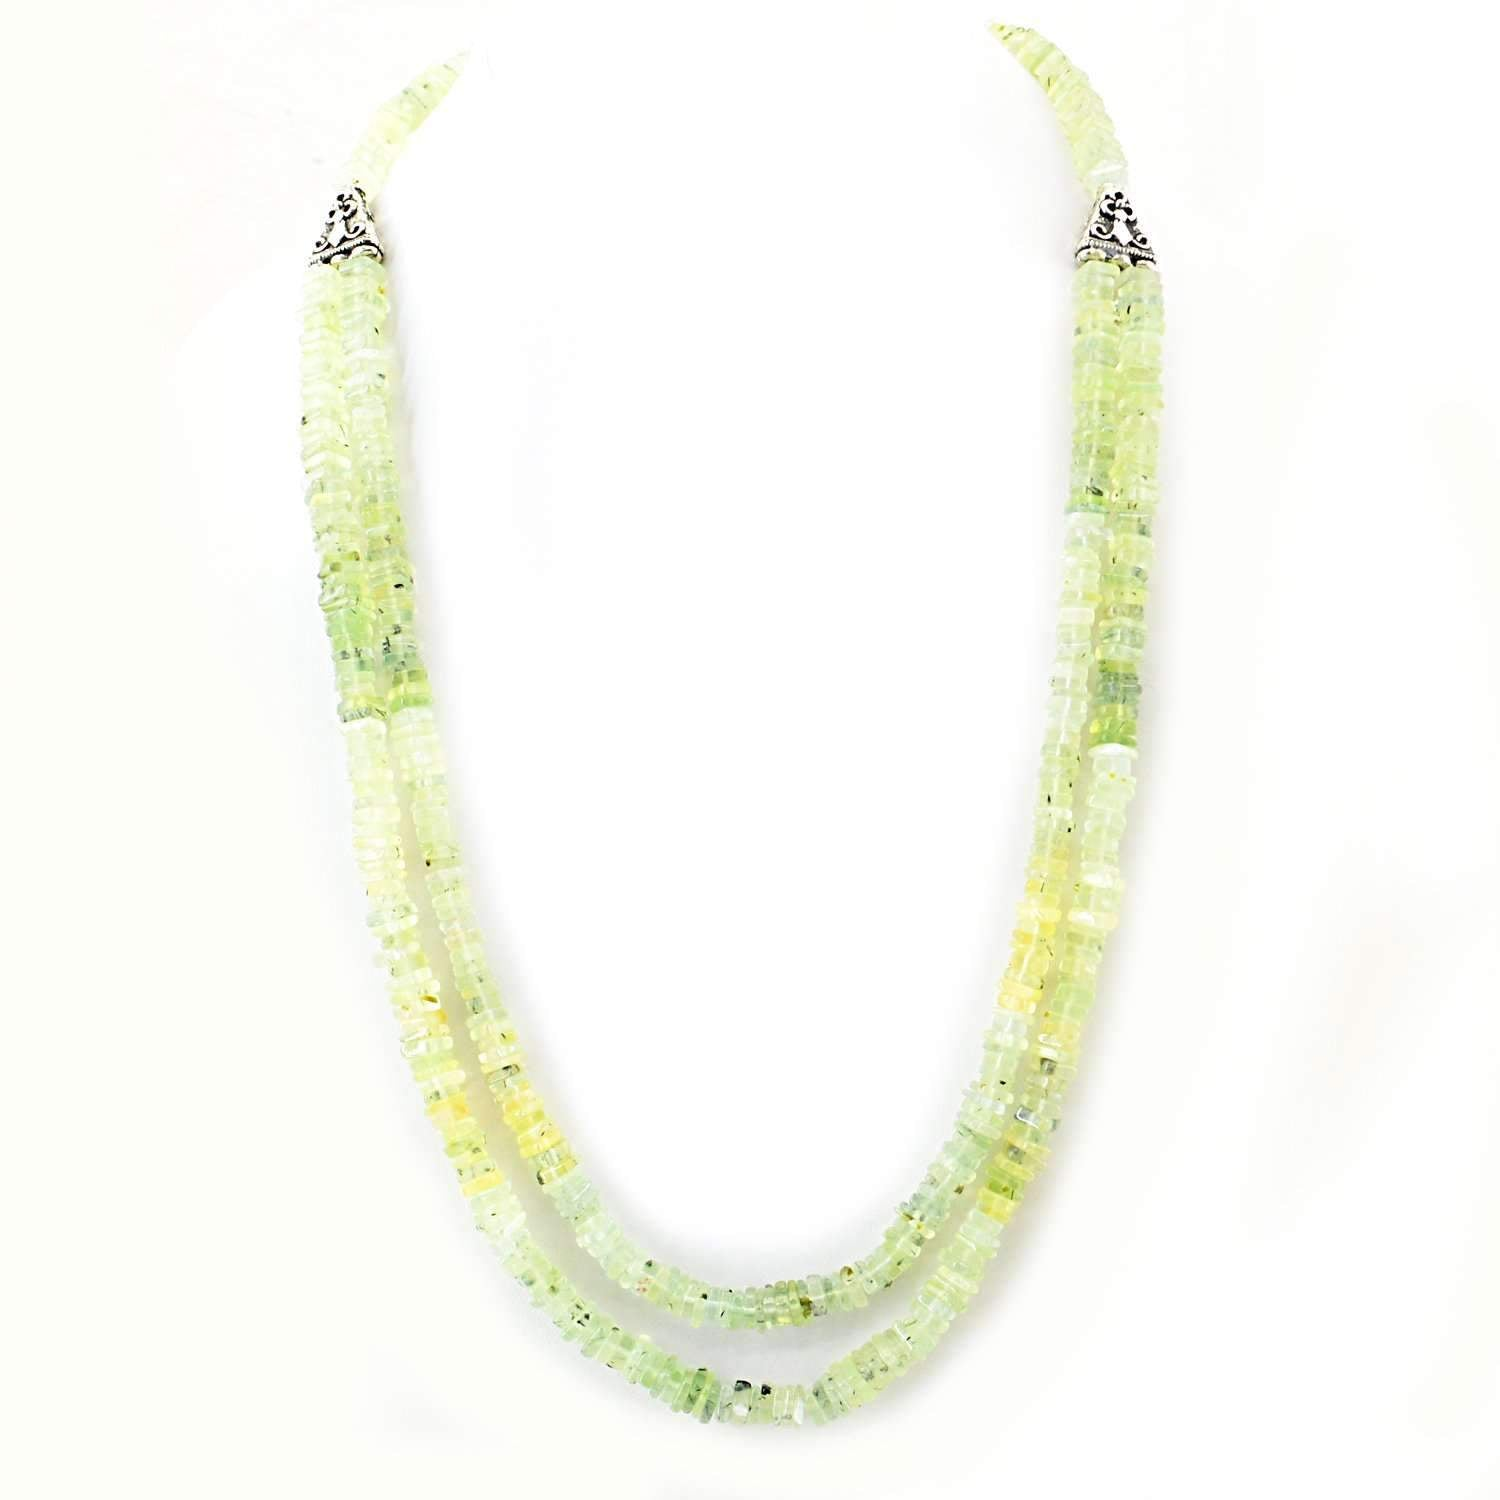 gemsmore:Green Phrenite Necklace Natural 2 Strand Unheated Beads - Lowest Price